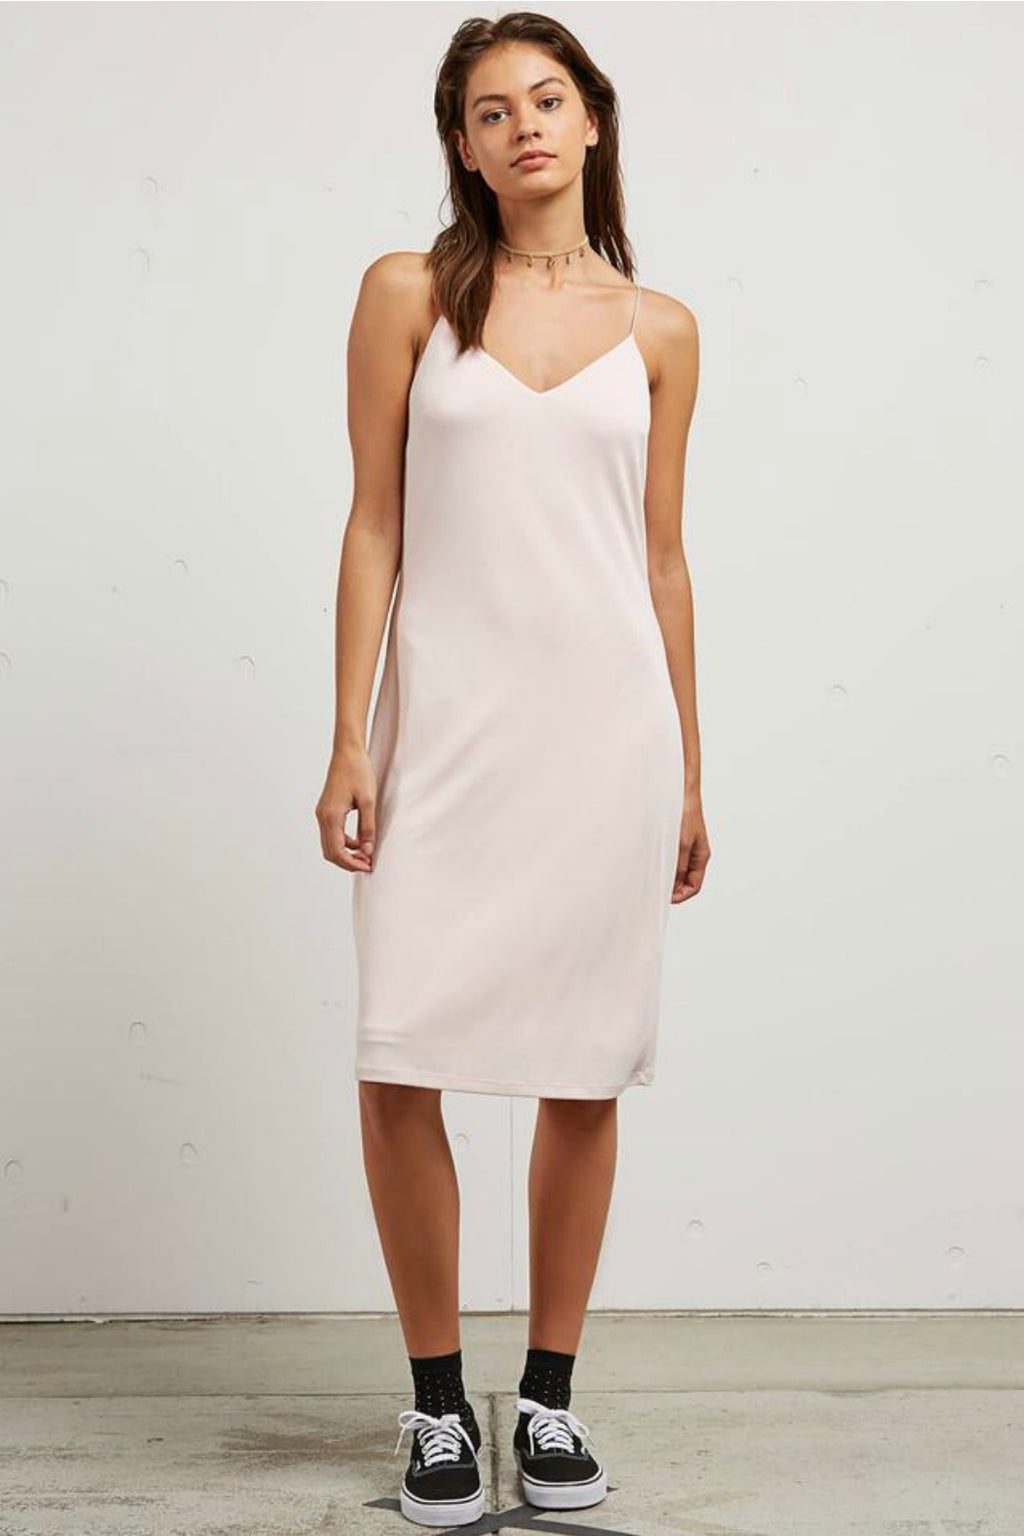 The Mojo Dress - Pink